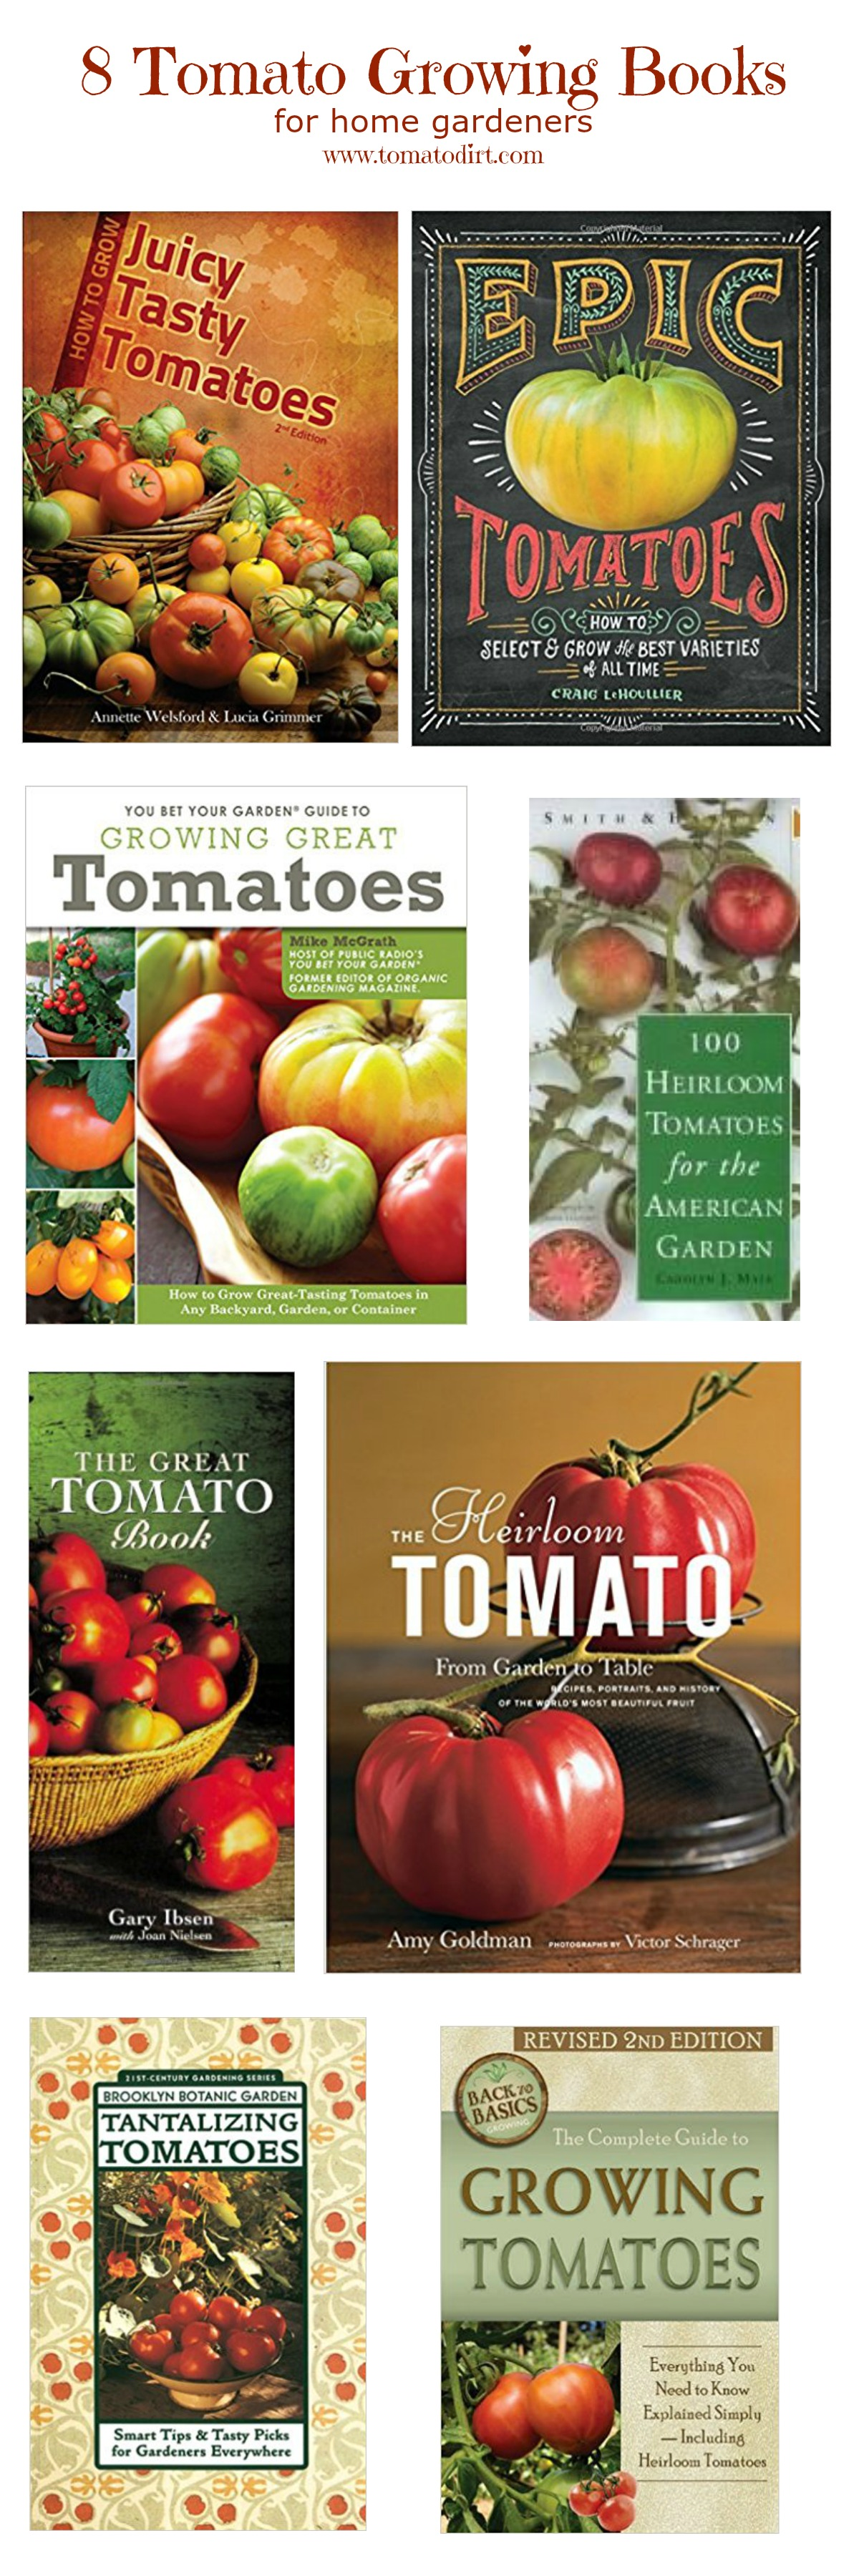 8 tomato growing books with Tomato Dirt